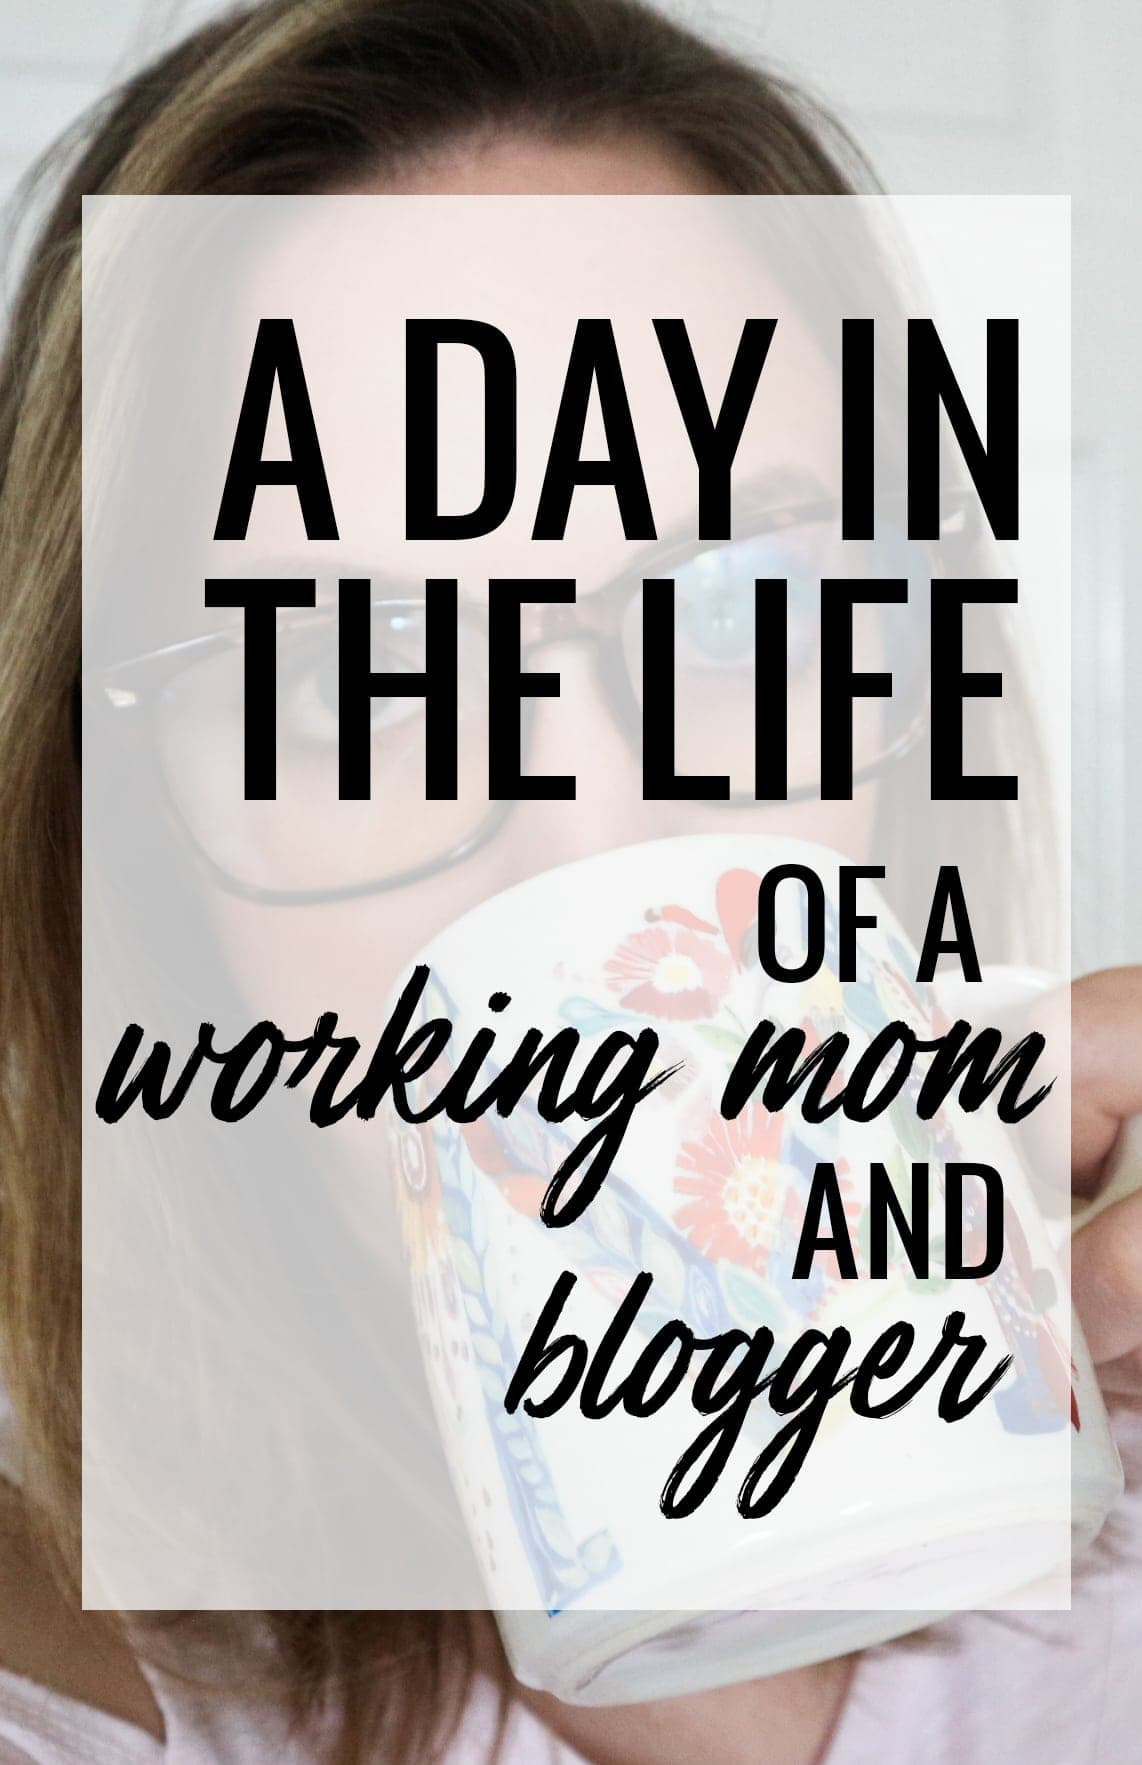 A day in the life of a working mom and blogger